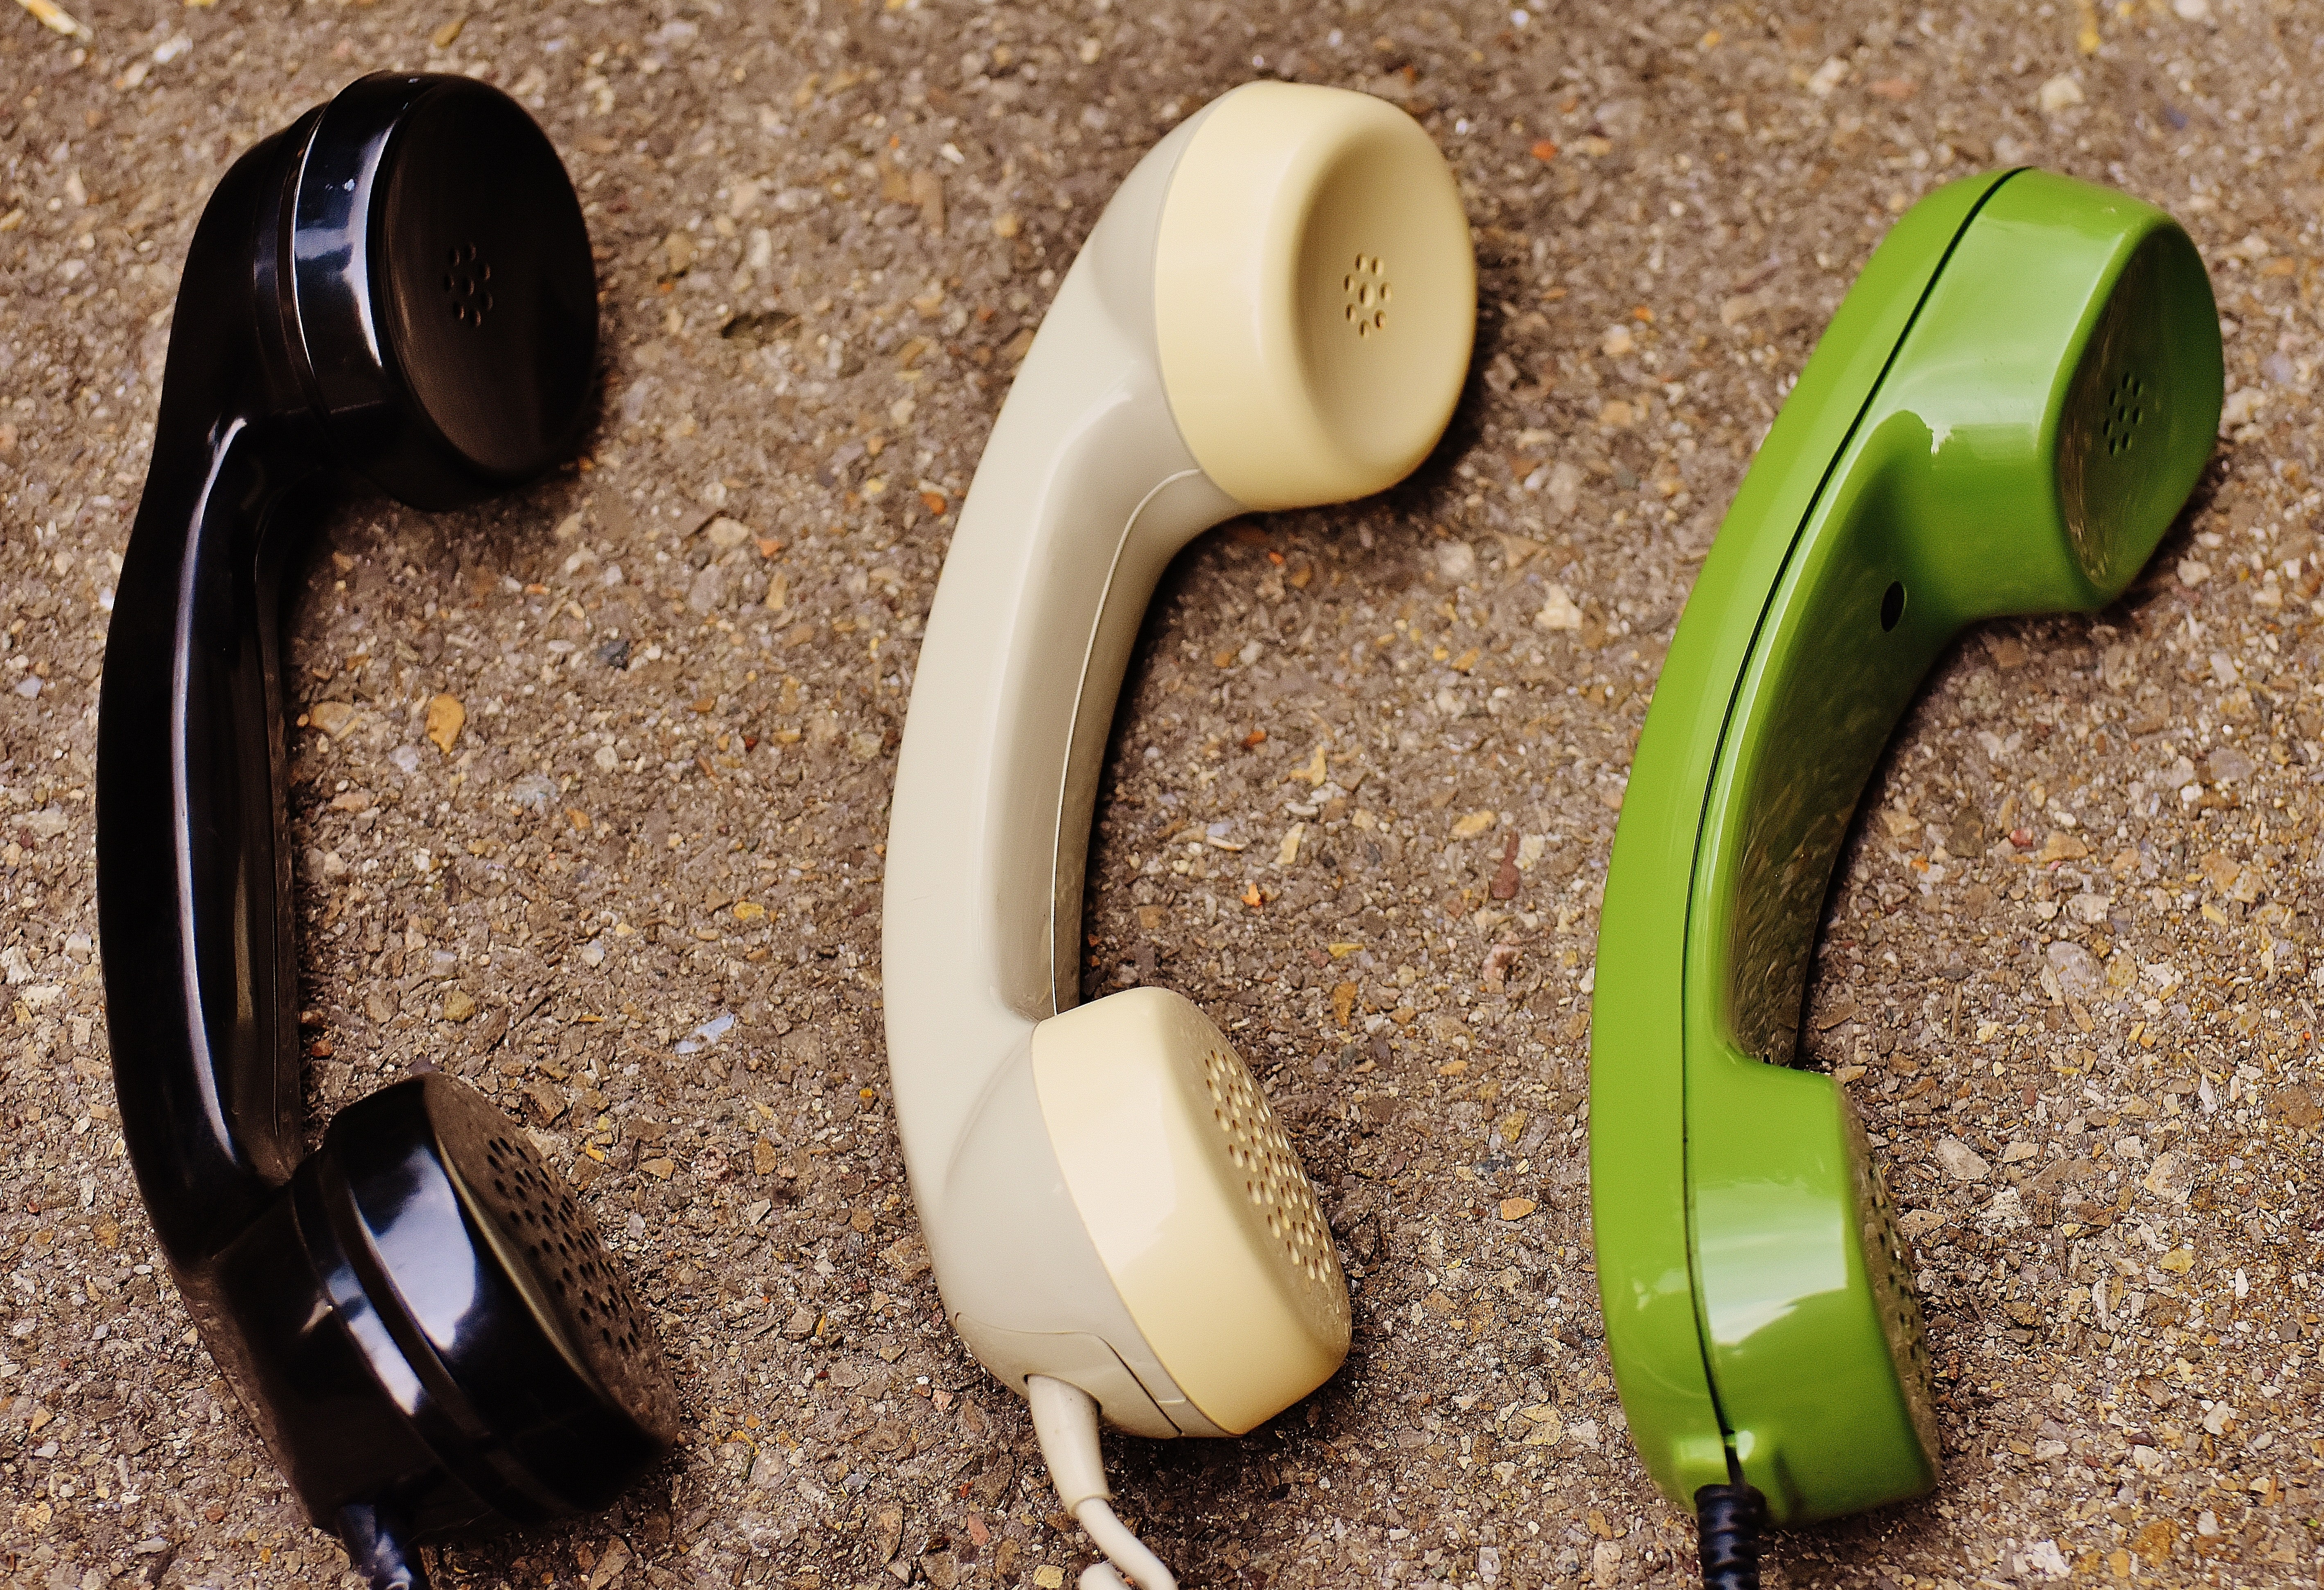 Black White and Green  Phones, Antique, Leisure, Technology, Sound, HQ Photo